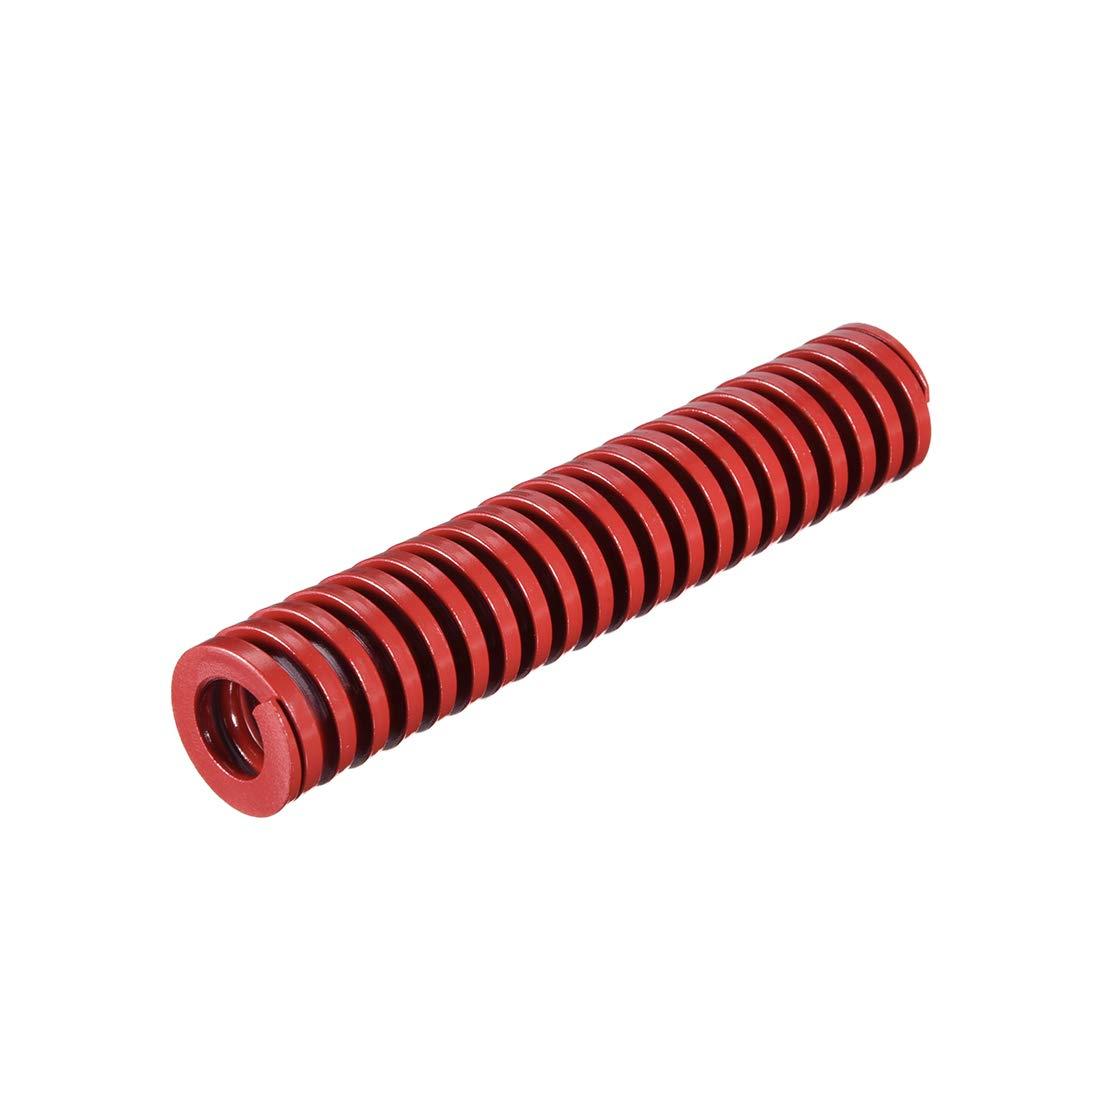 uxcell 30mm OD 60mm Long Spiral Stamping Middle Load Compression Mould Die Spring Red 1Pcs